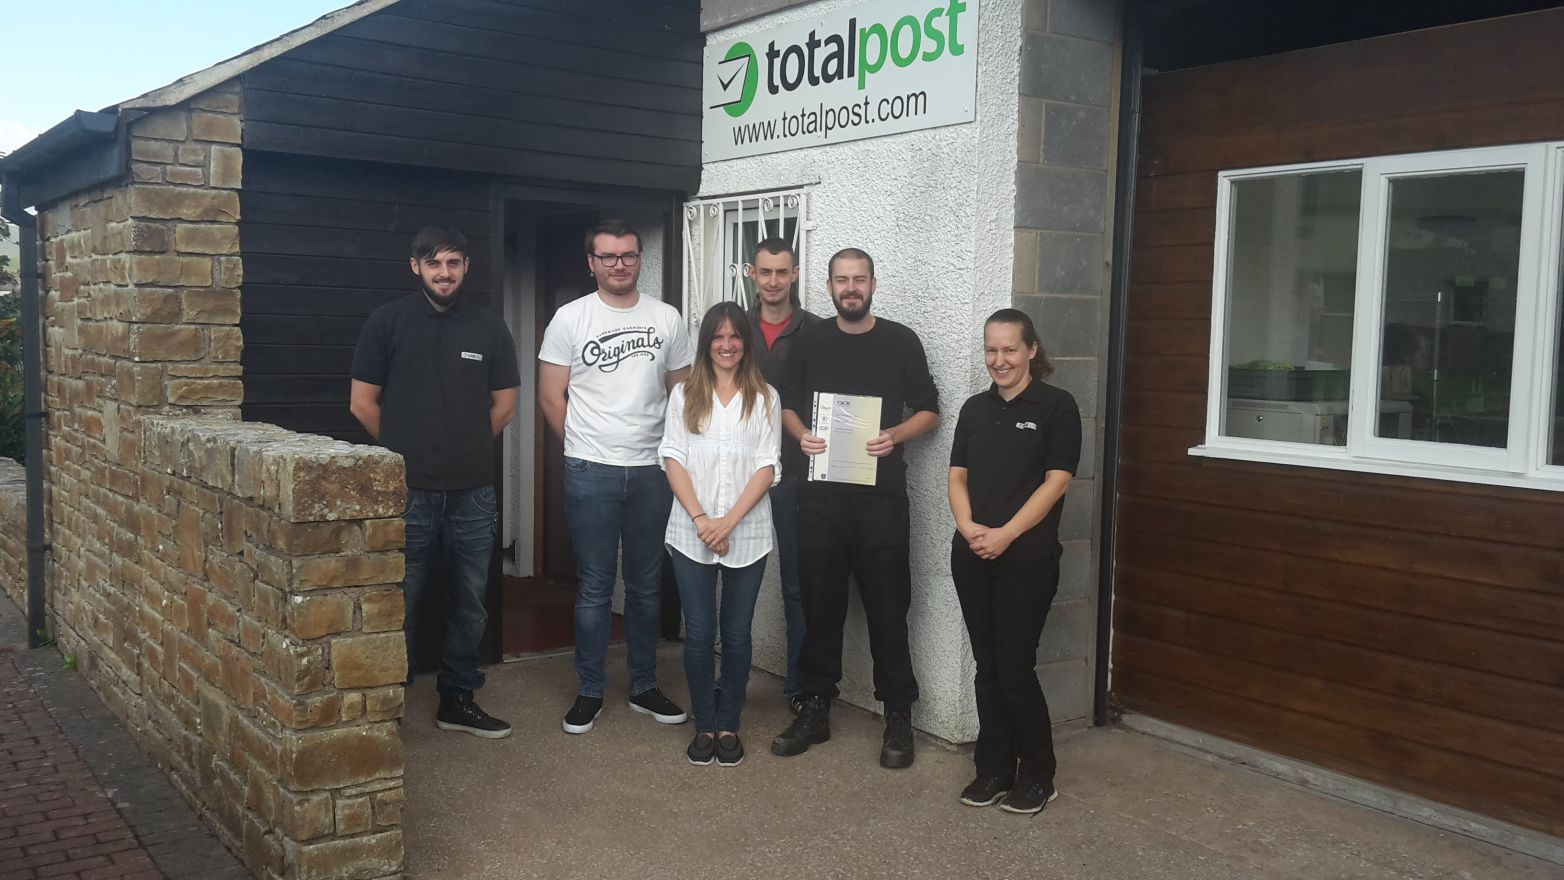 Totalpost staff